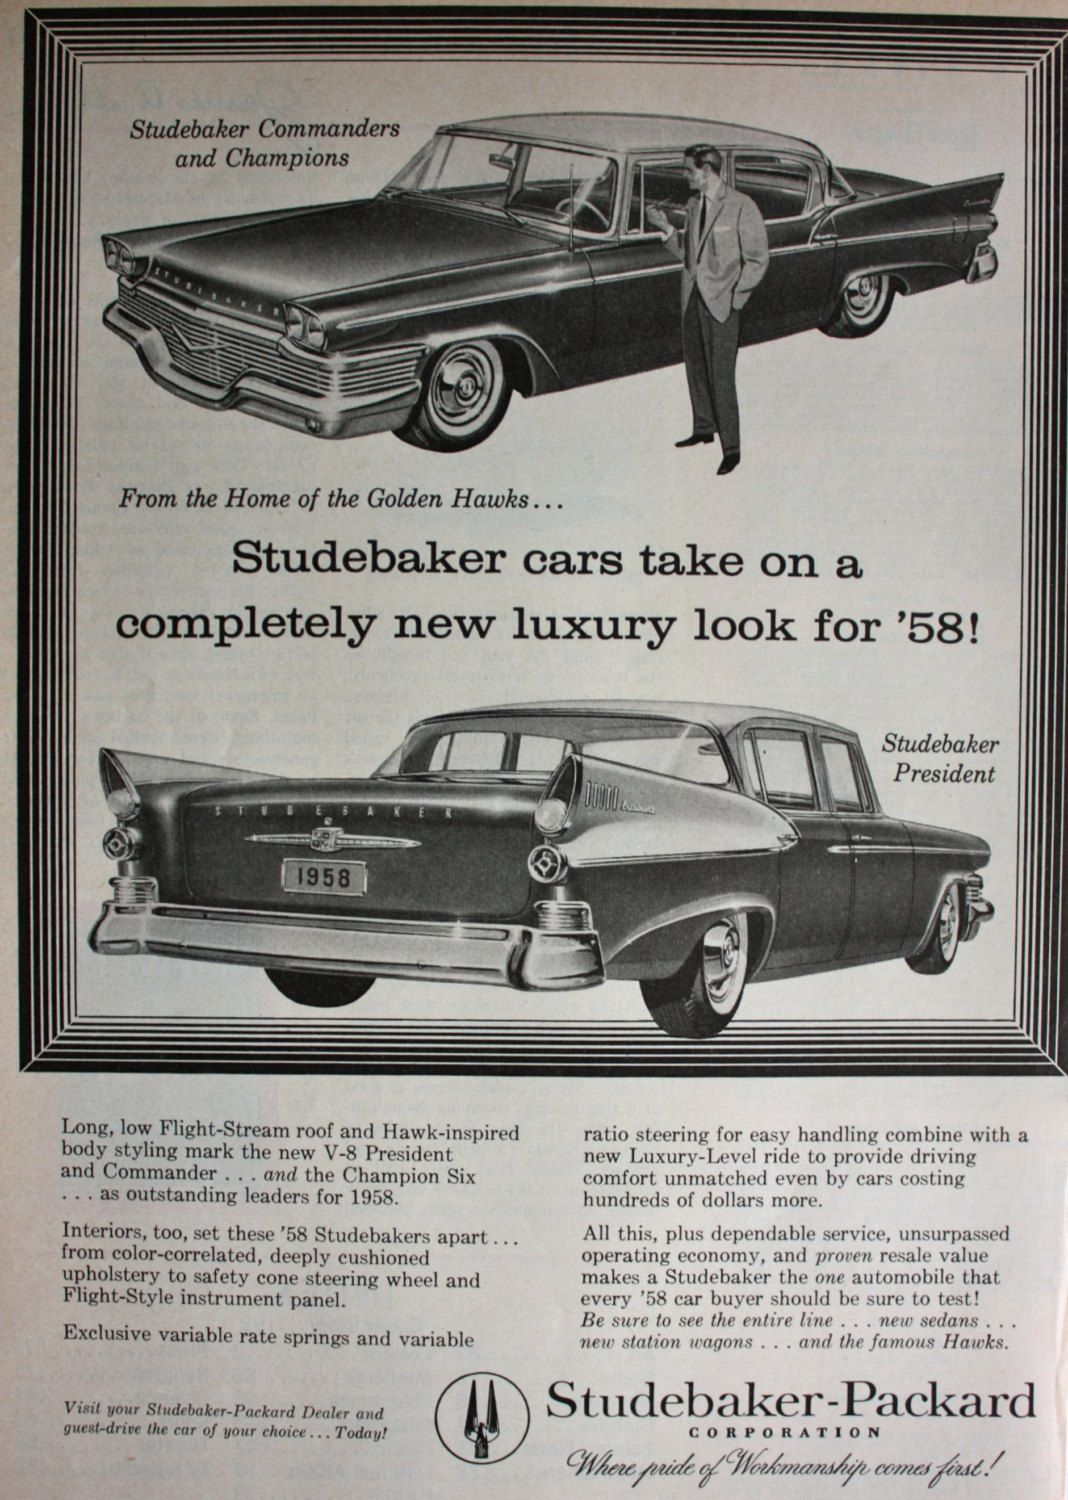 1957 Ad 1958 Studebaker Packard Car President And